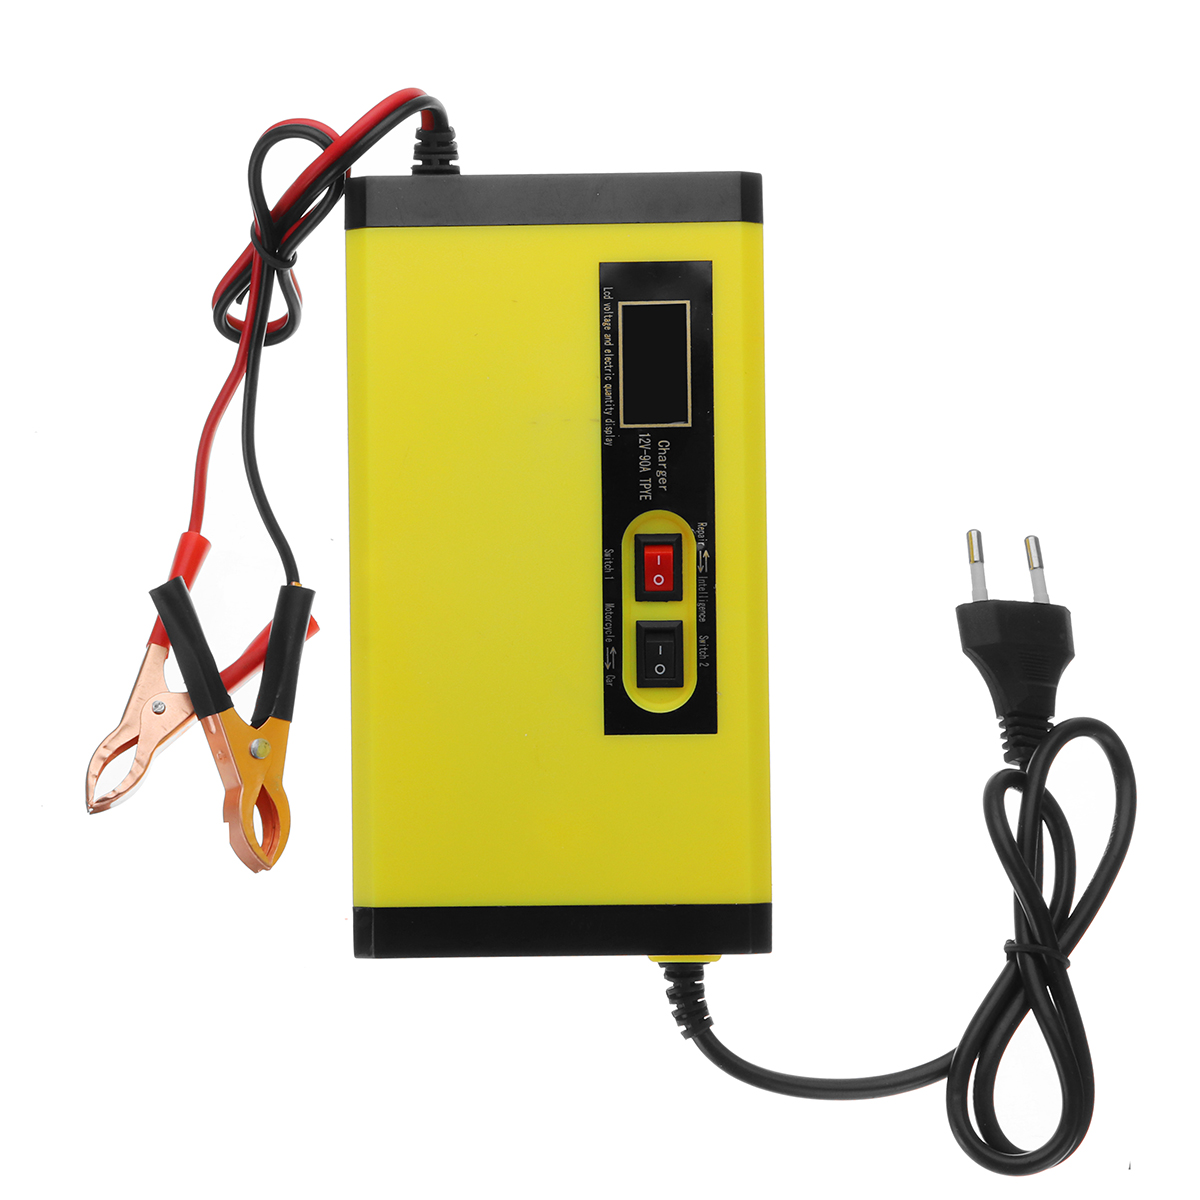 100W 12V 8A 100-240V Intelligent Battery Charger Pulse-Repair For Car Motorcycle Wet Lead Acid EU/US Plug LCD Display Lightweigh